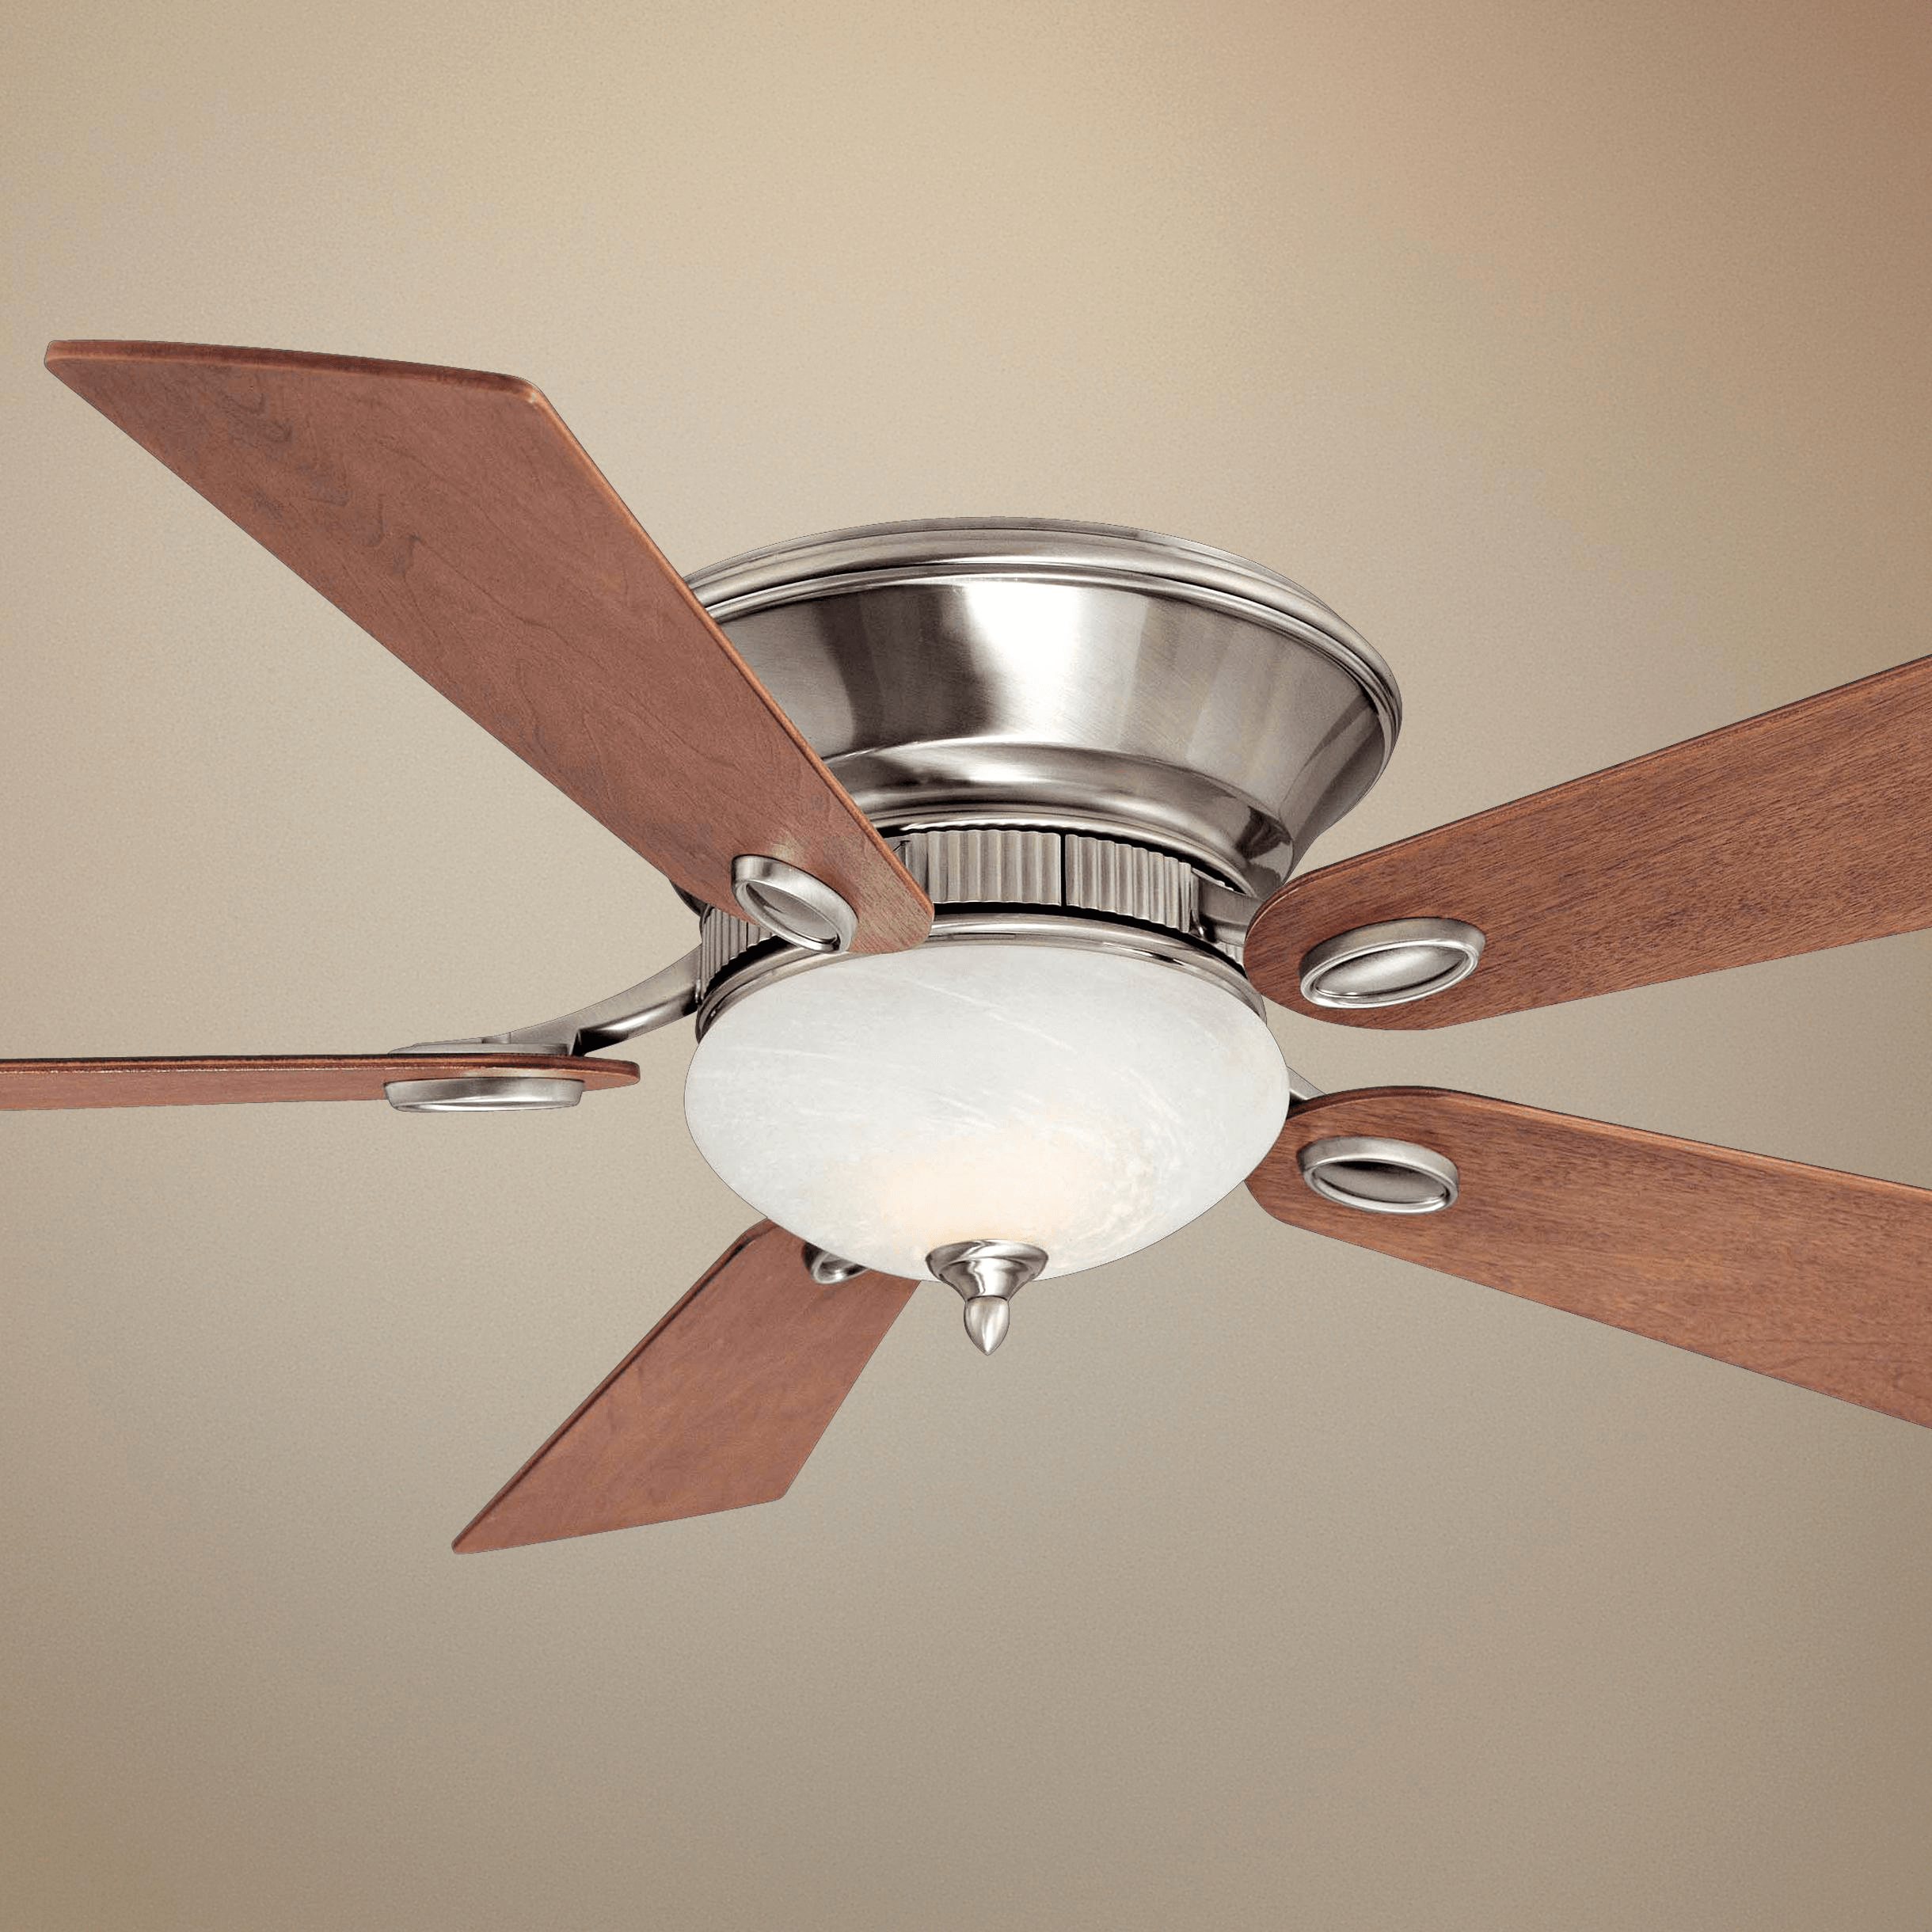 fan full low ceiling pictures withing size concept room lighting remarkableing lights of best roomliving remarkable living ceilings fans for with